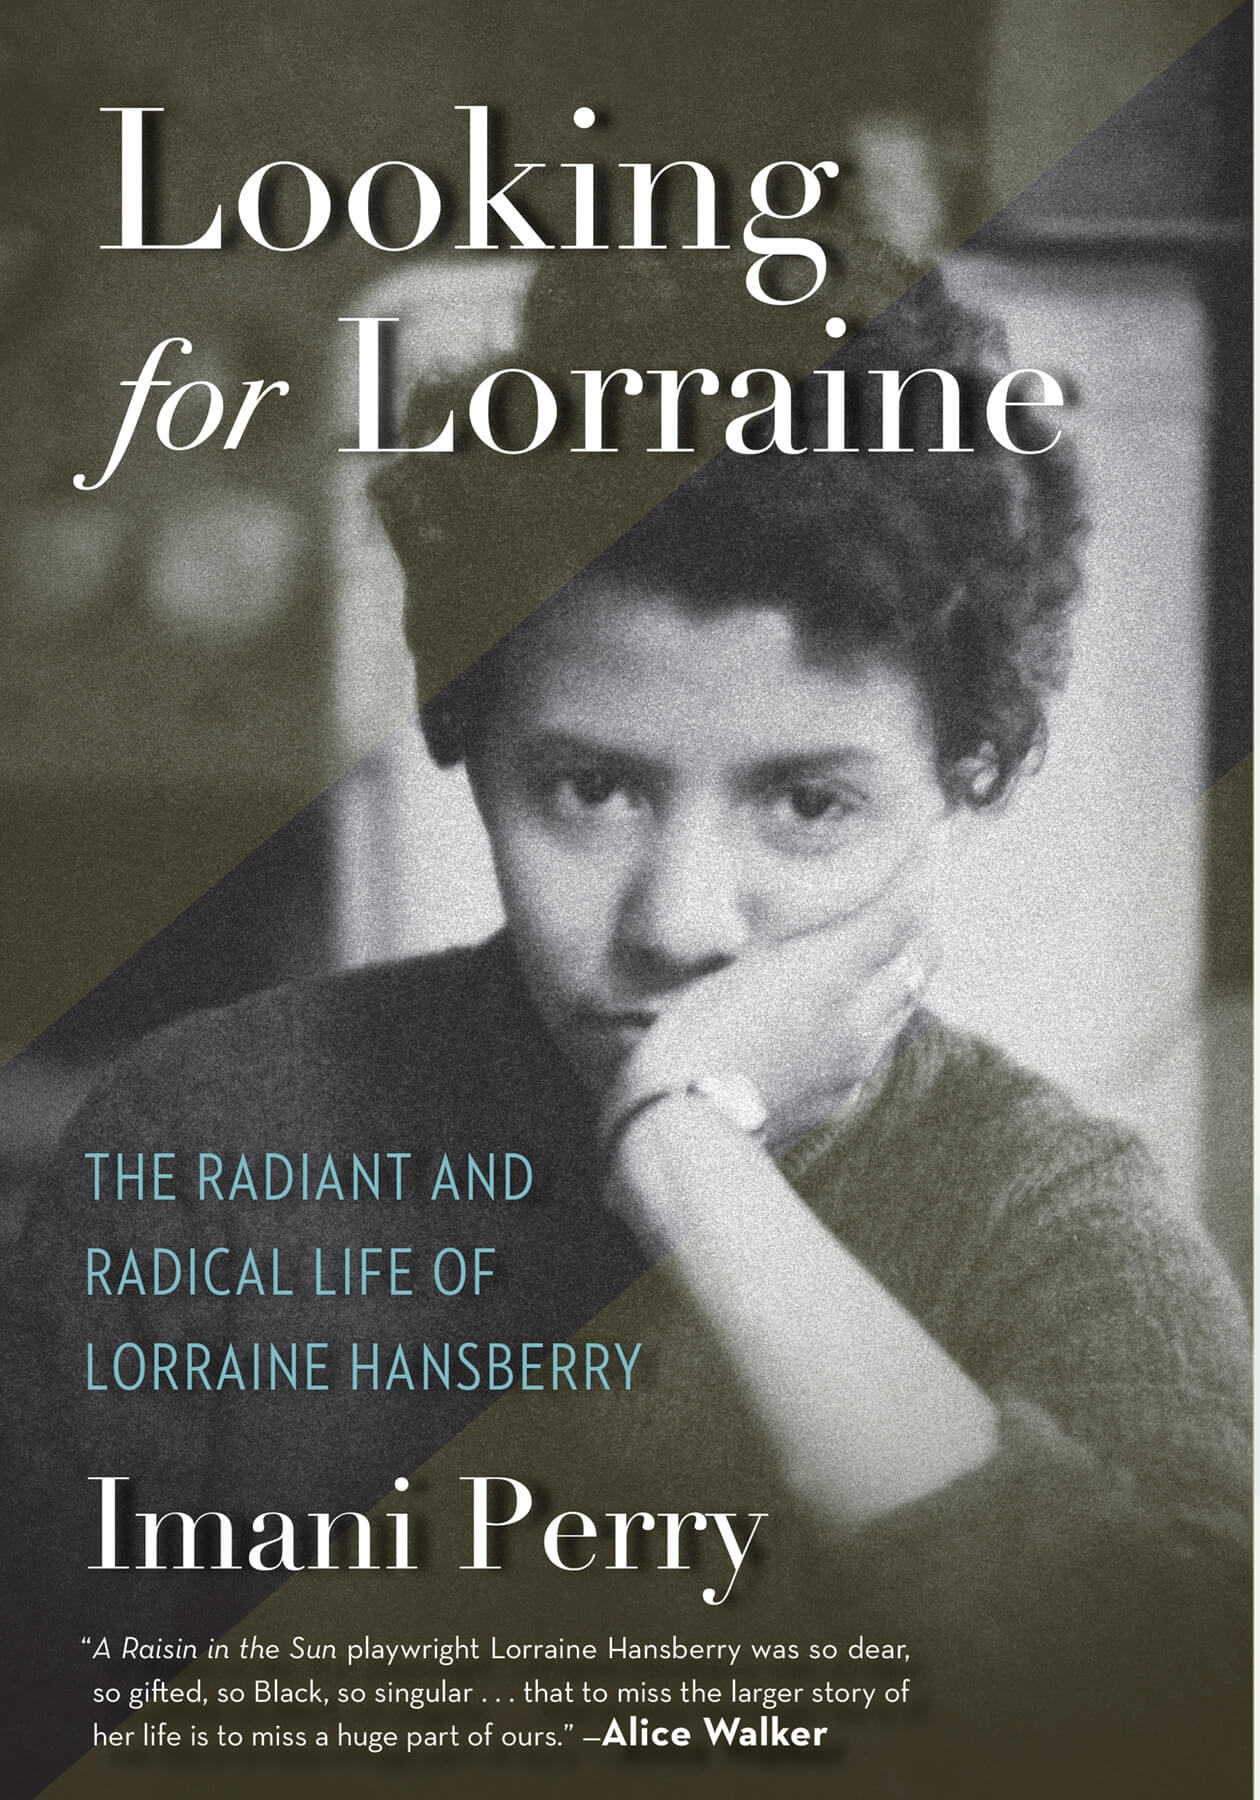 Book cover of Looking for Lorraine: The Radiant and Radical Life of Lorraine Hansberry by Imani Perry